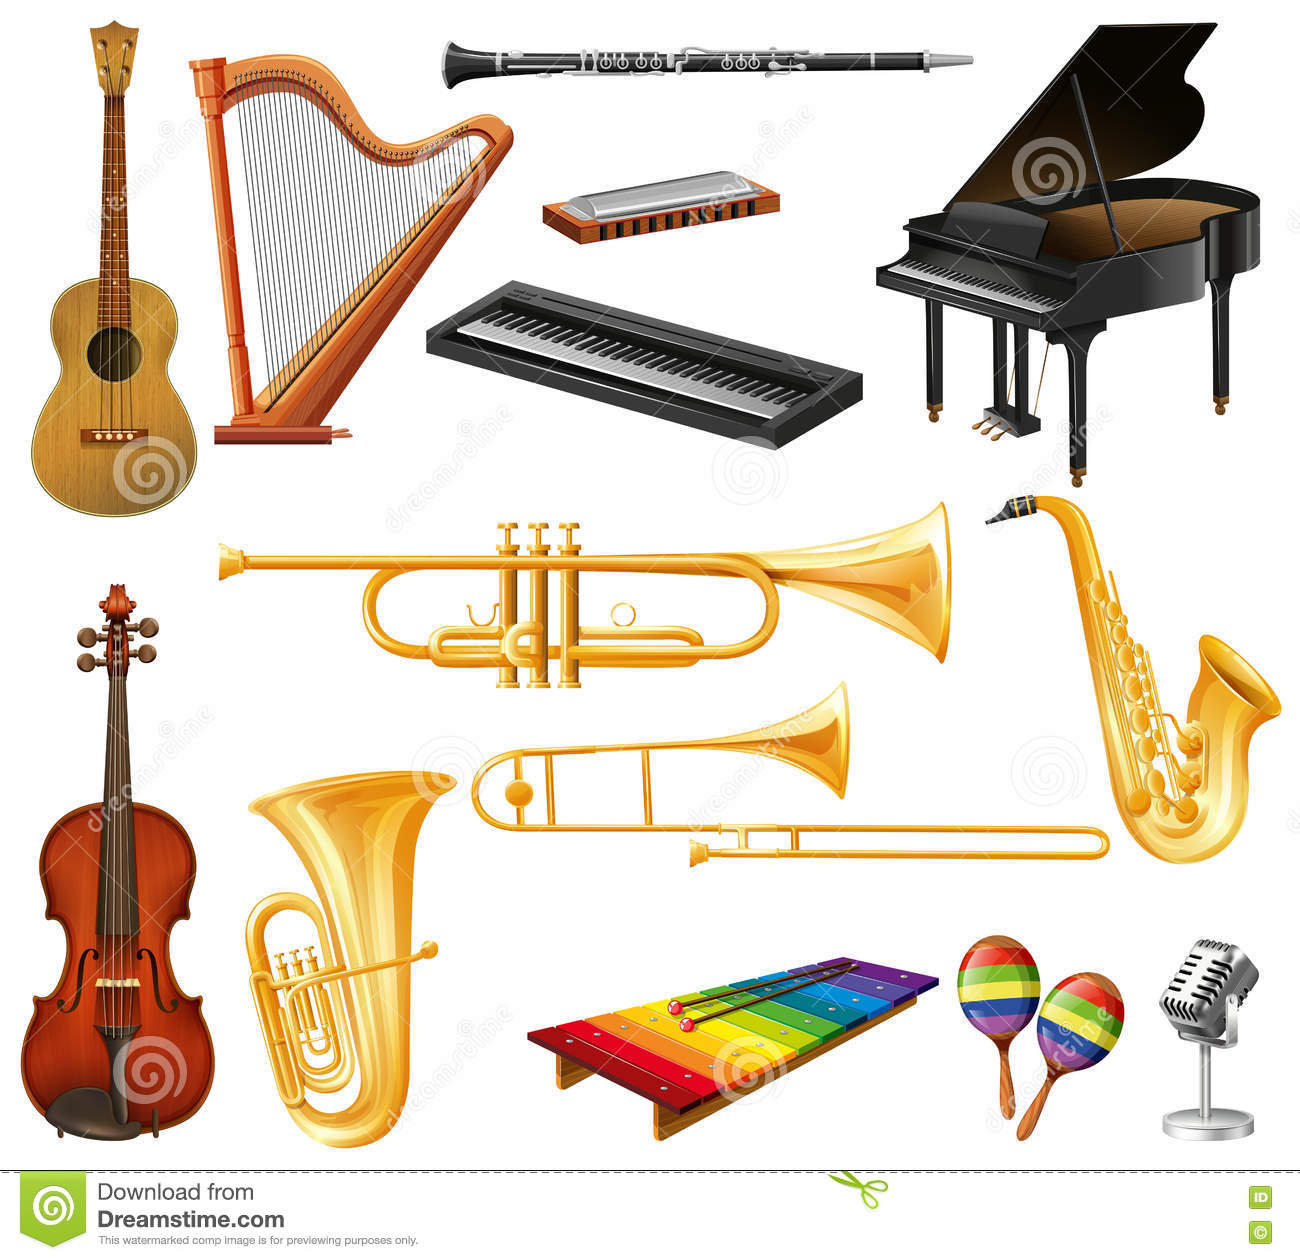 Different Types Of Musical Instruments Stock Vector - Illustration ...